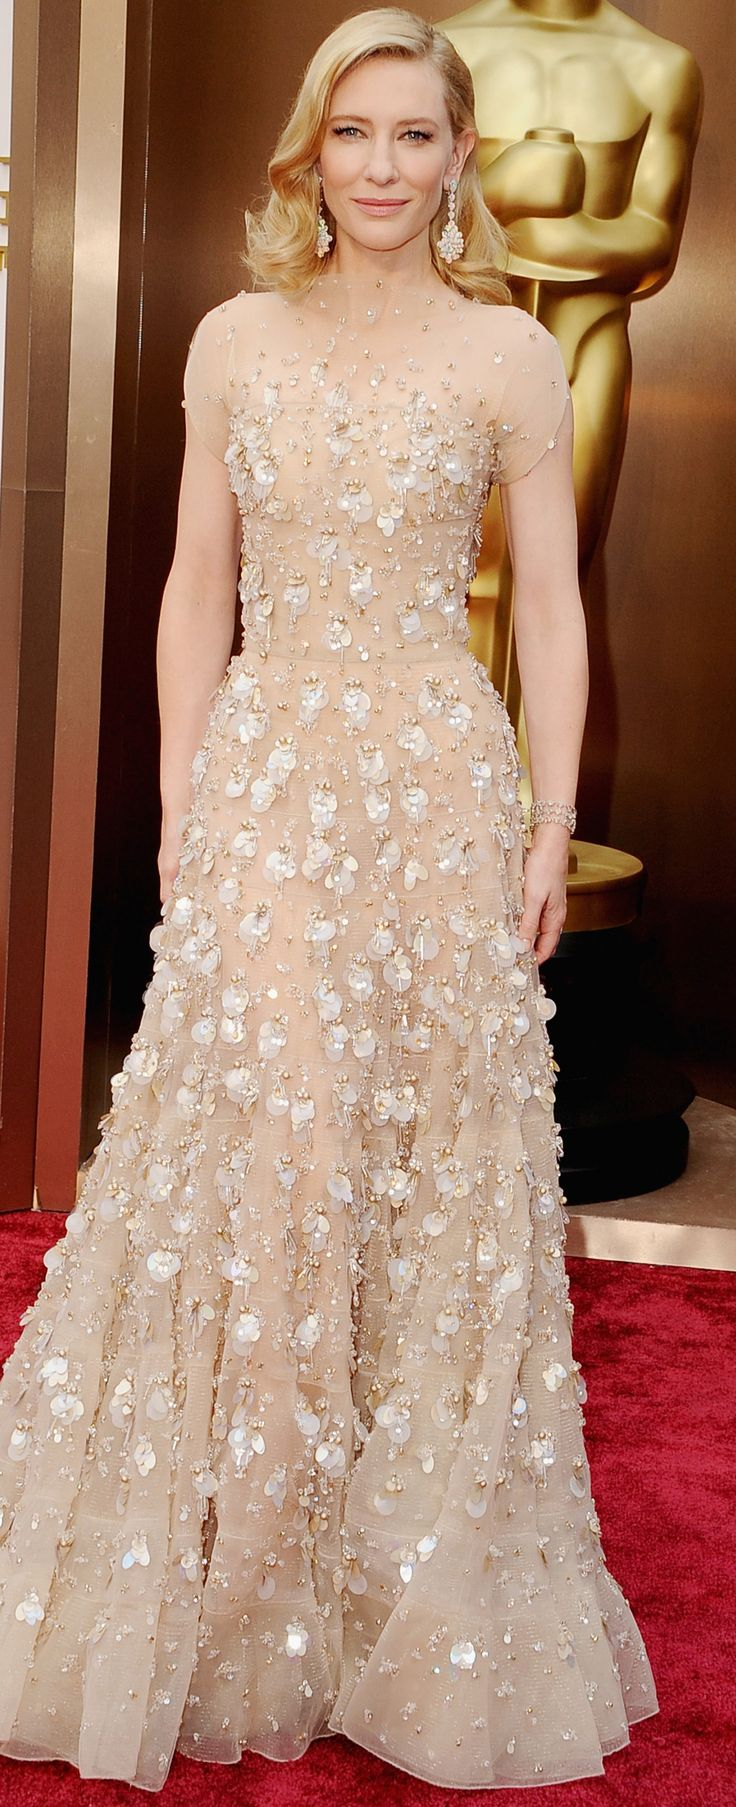 Cate Blanchett in Armani Prive at the #Oscars